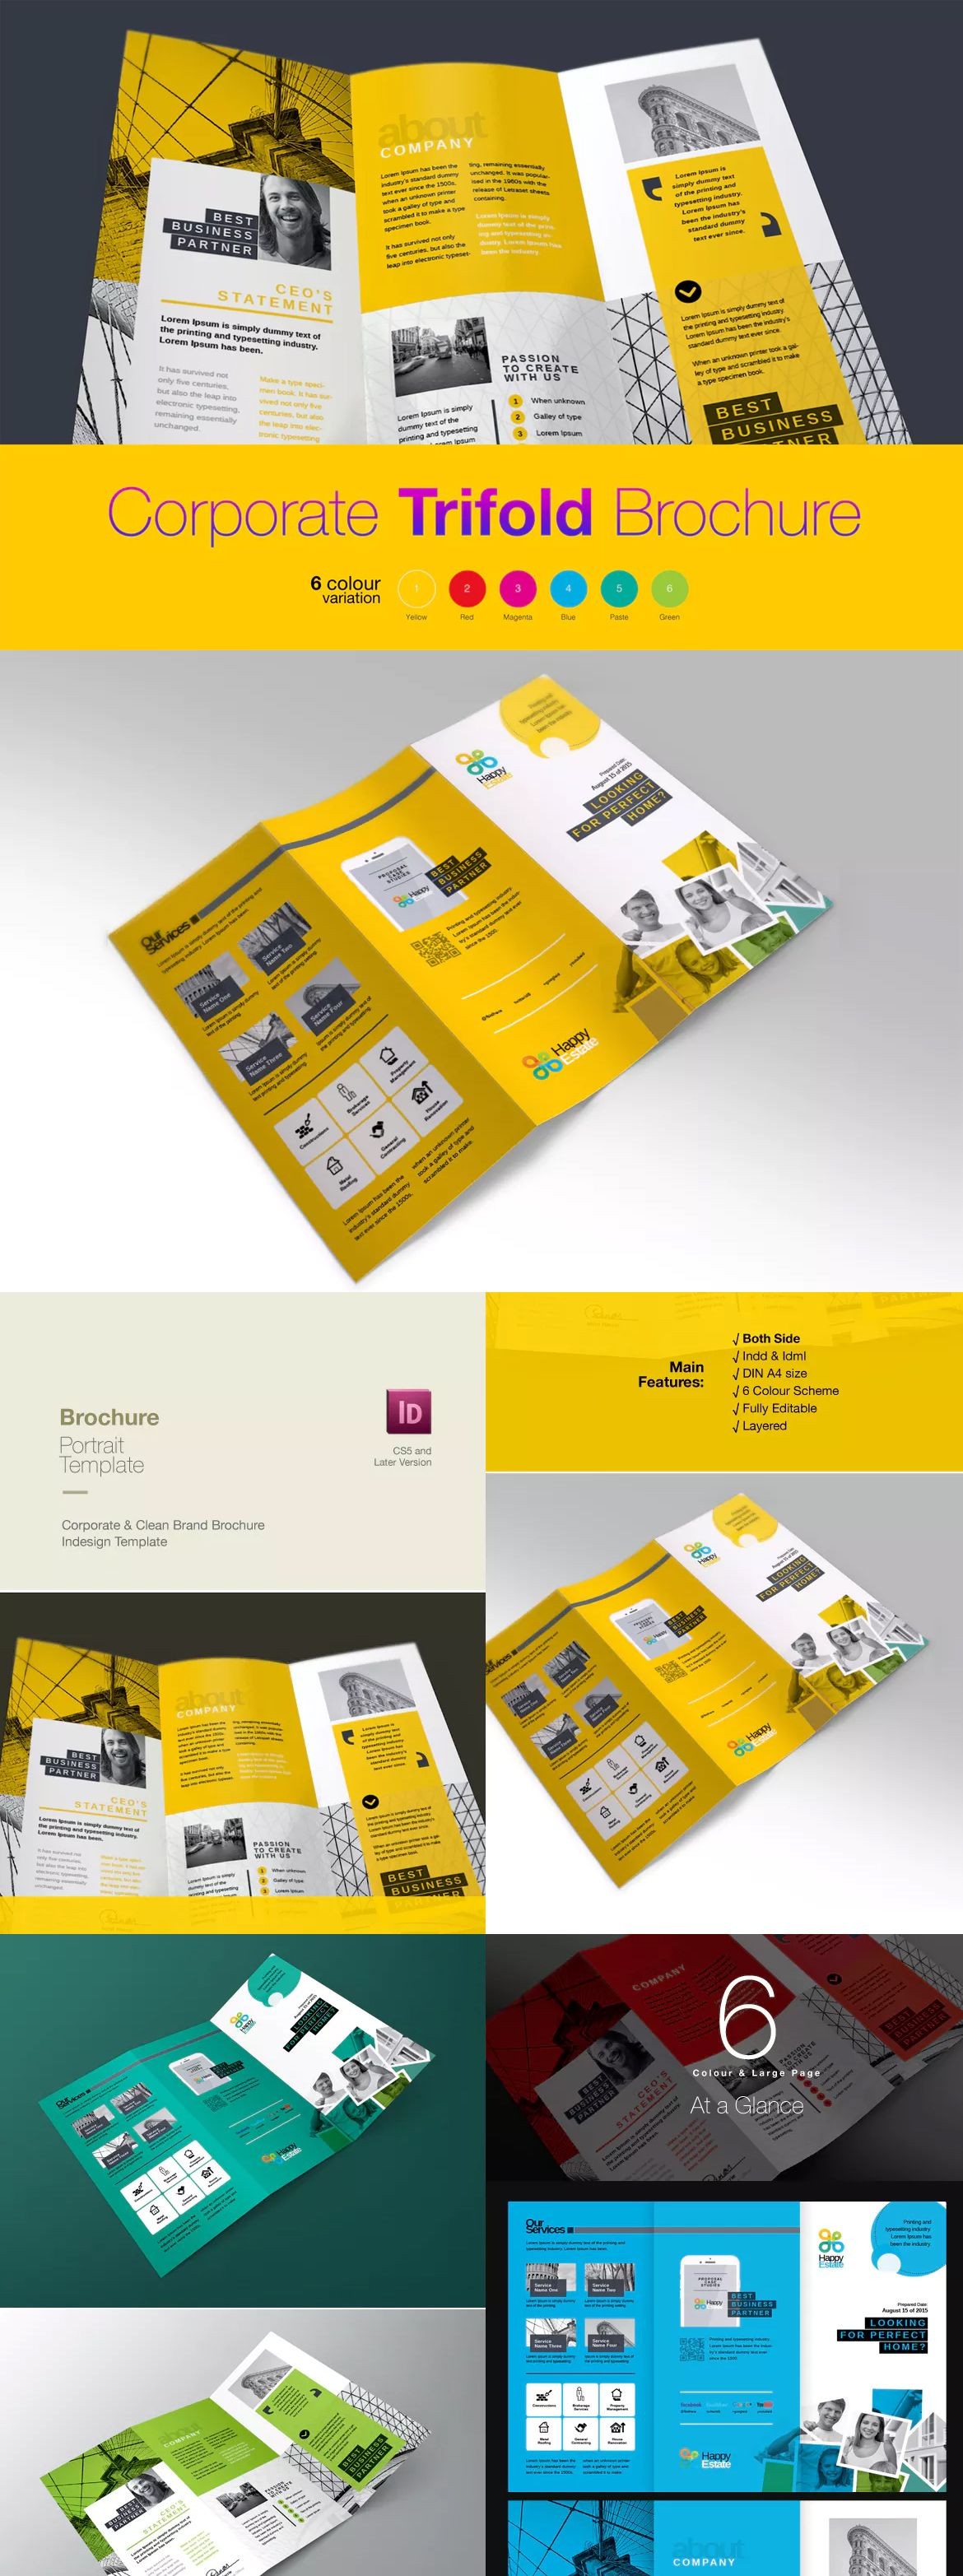 Trifold Brochure Template InDesign INDD A4 - Unlimited Downloads ...